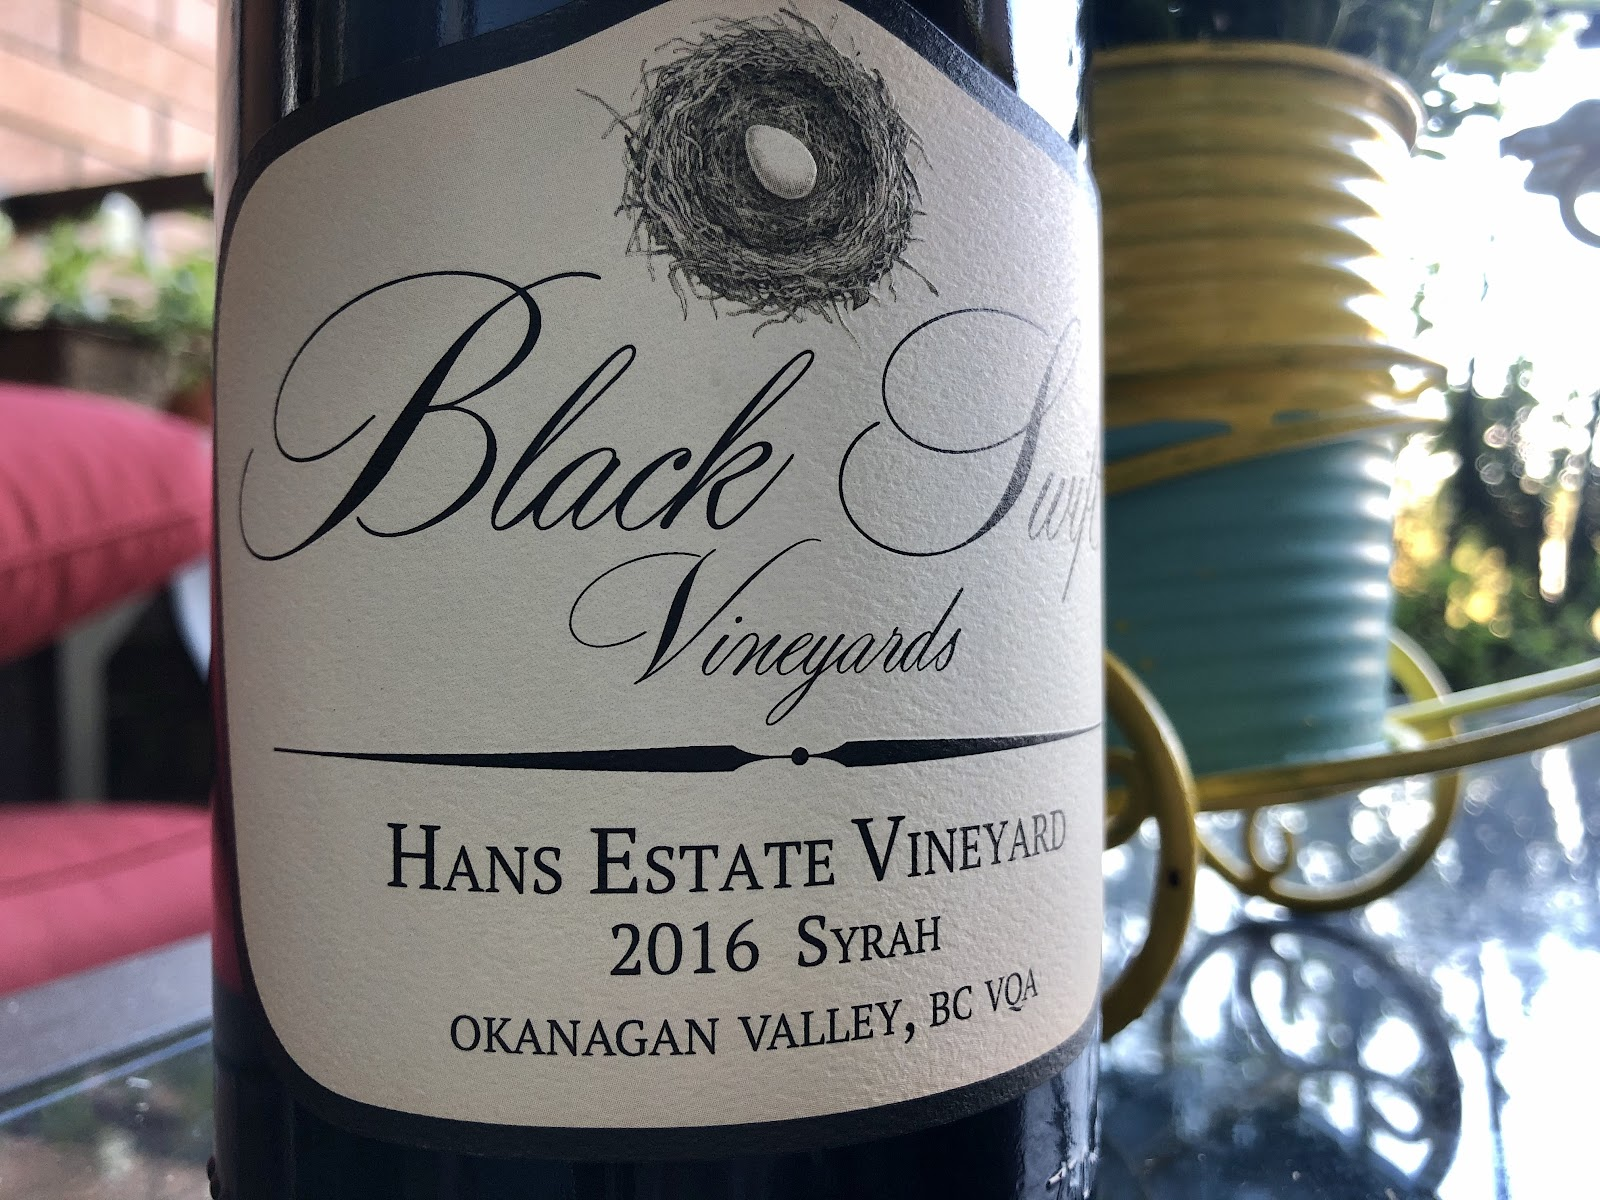 This is the 2016 vitange of the Black Swift Syrah; wine guide